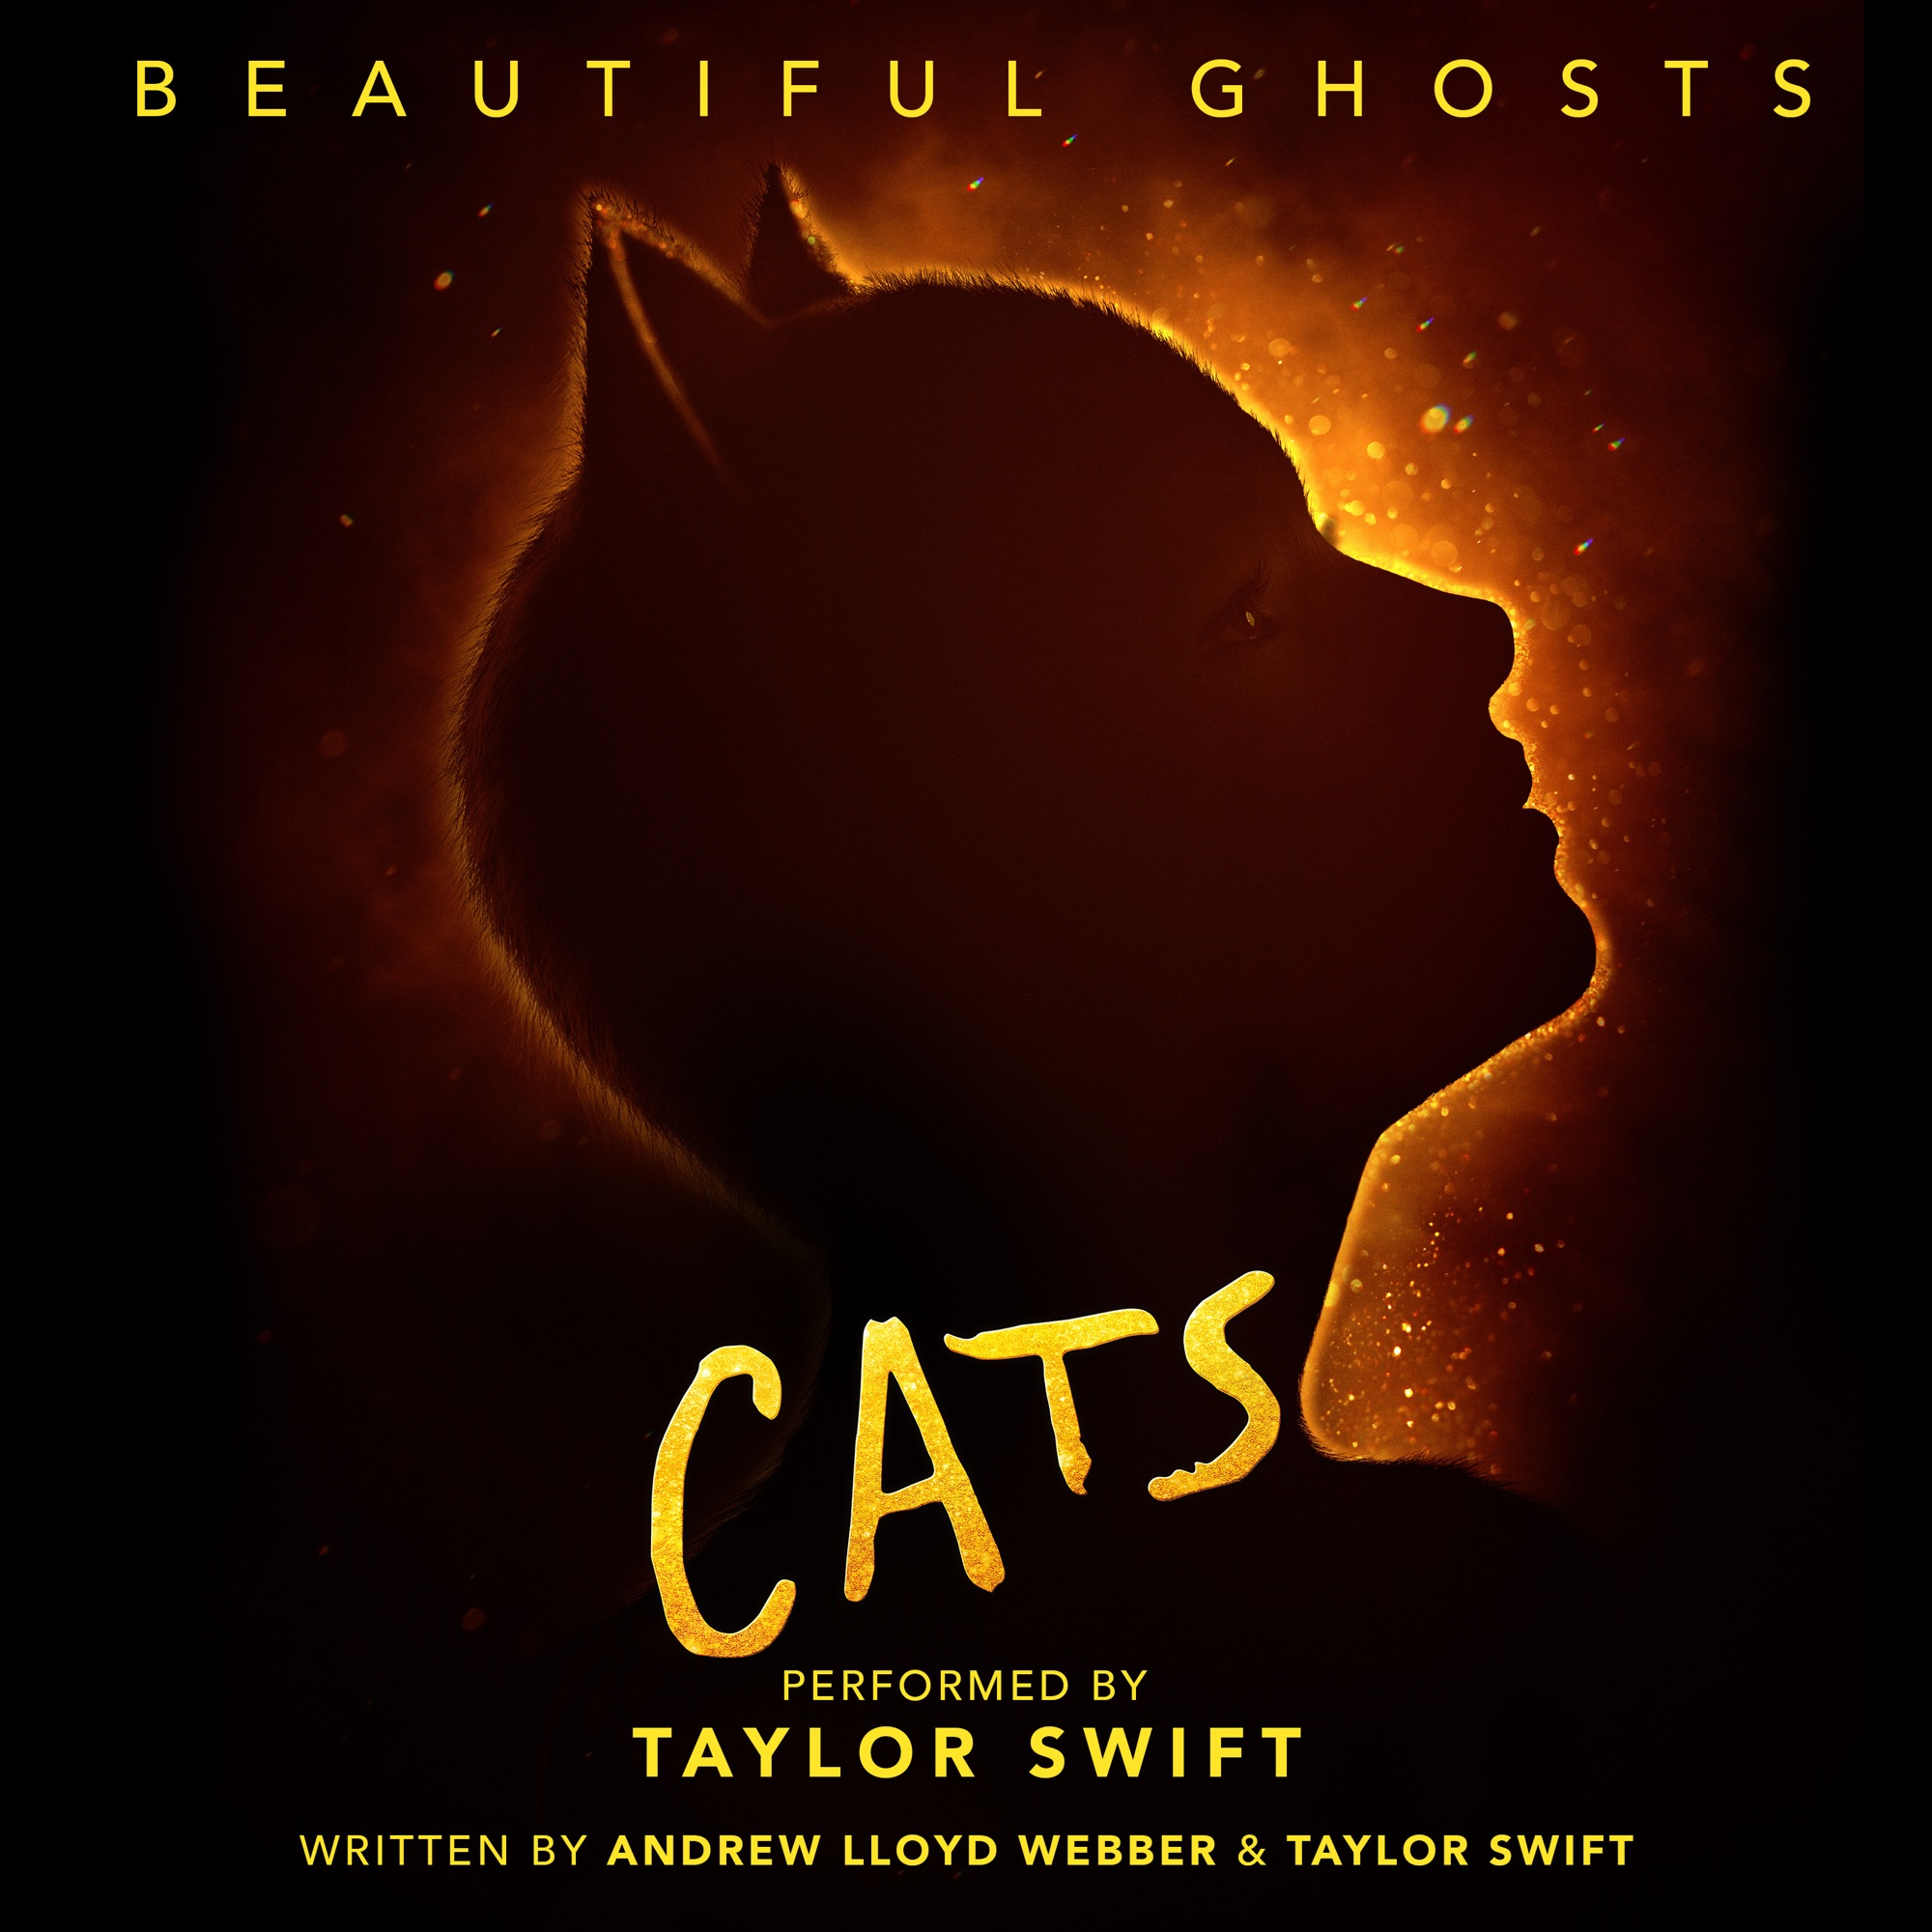 Beautiful Ghosts by Taylor Swift (Polydor, 2019)